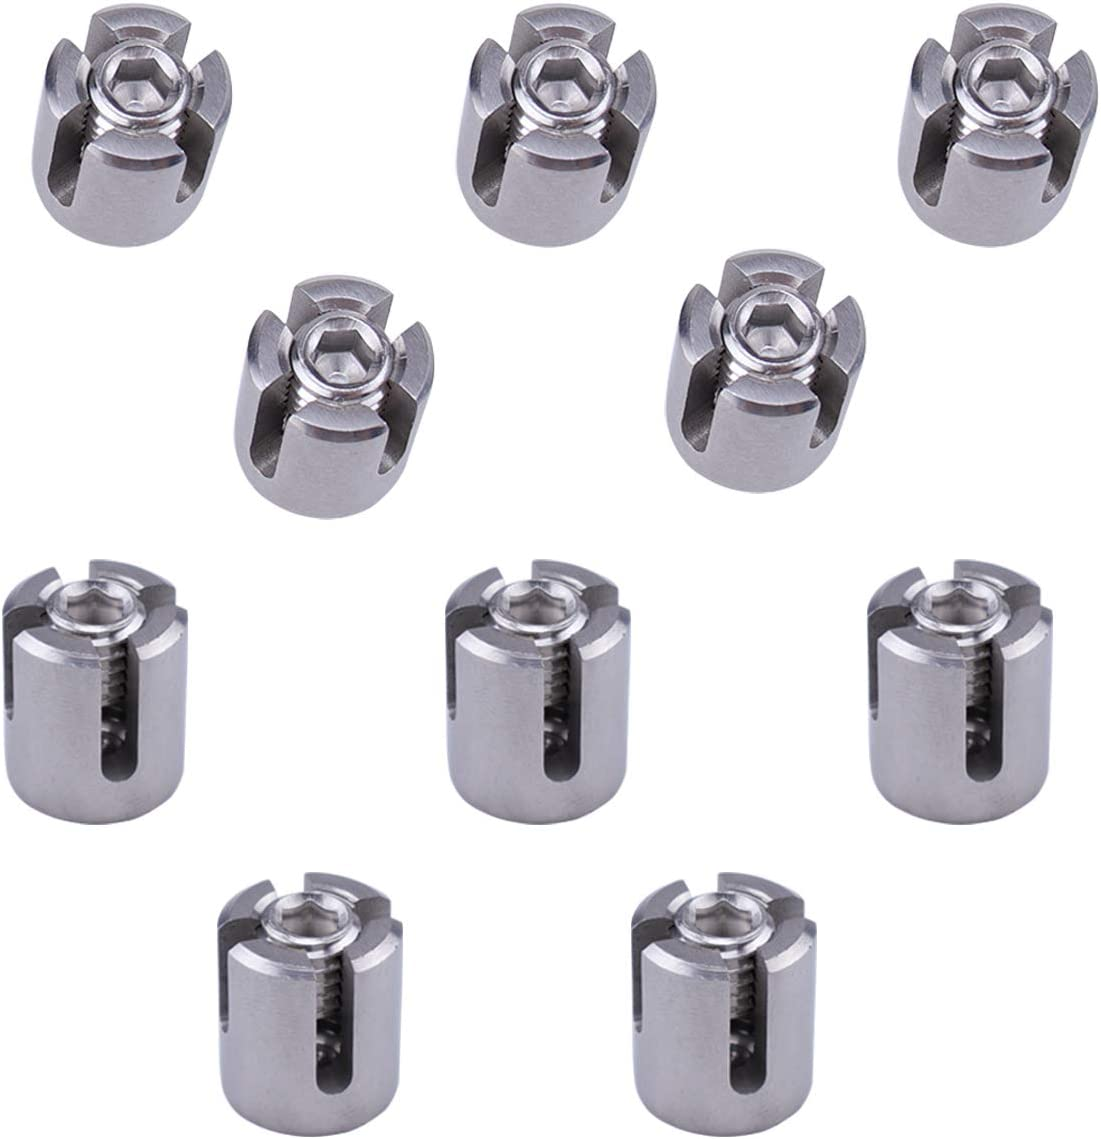 Muzata Cable Railing Cross Cable Clamps for 1//8 Wire Rope Clips Fitting for Wall Trellis System,Stainless Steel T316 Marine Grade 10PACK